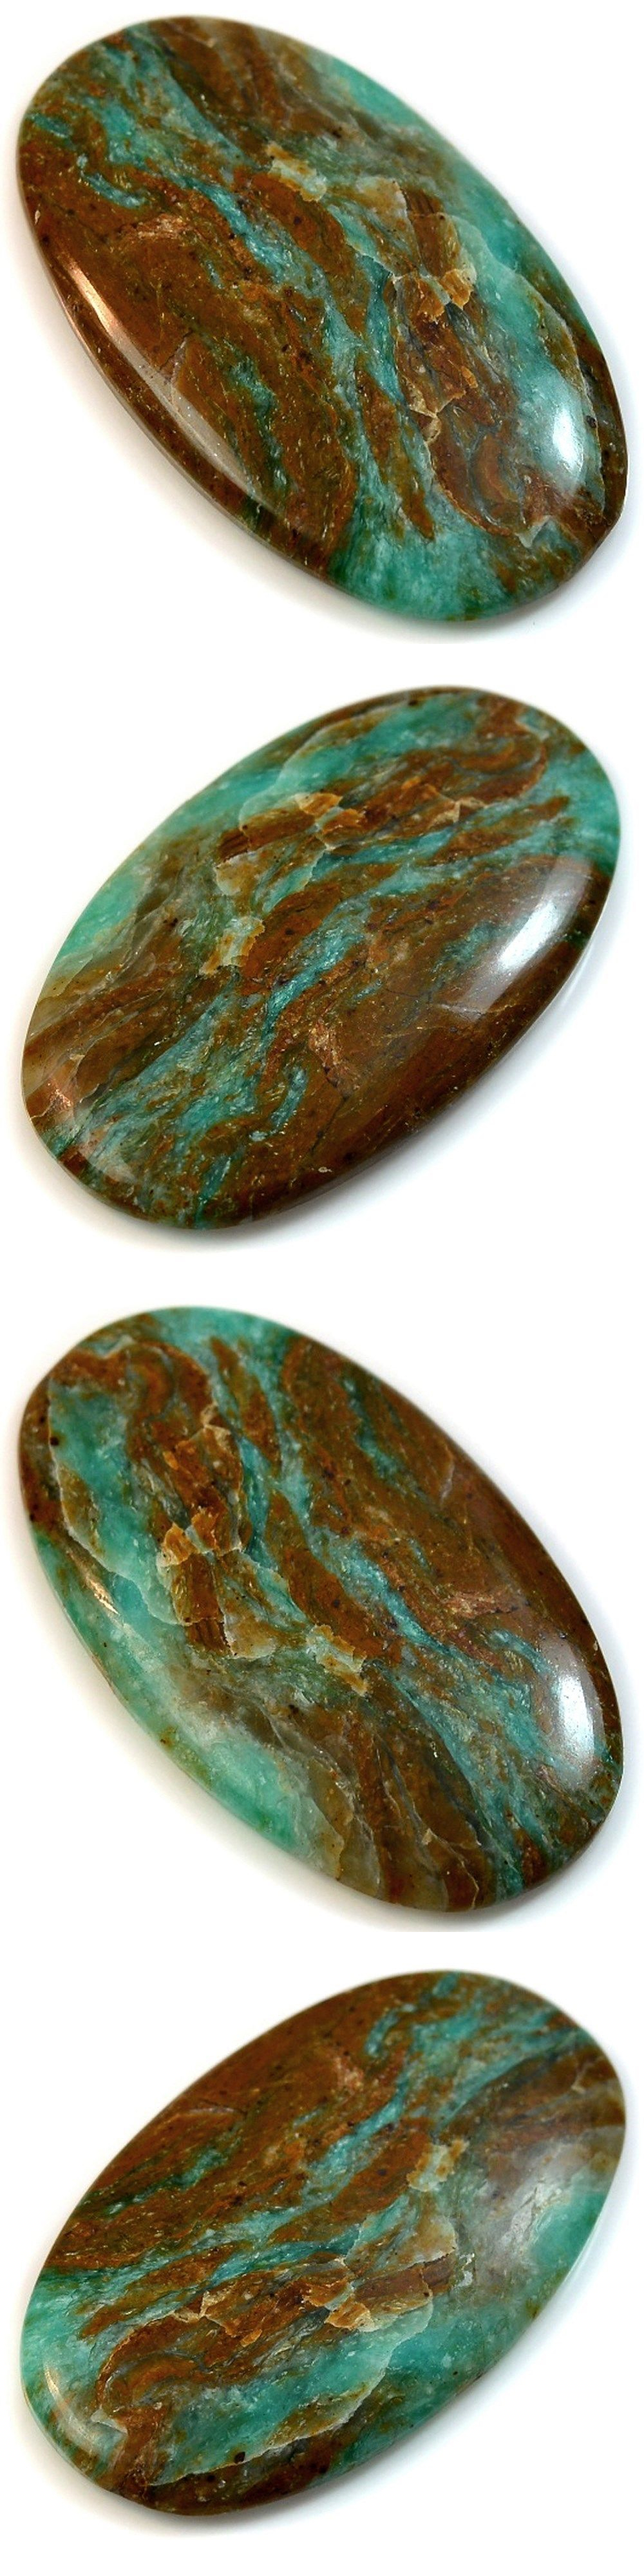 Other Loose Gemstones 282: 59.5Ct Huge Natural Peruvian Blue Opal (52Mm X 30Mm) Cabochon -> BUY IT NOW ONLY: $34.48 on eBay!